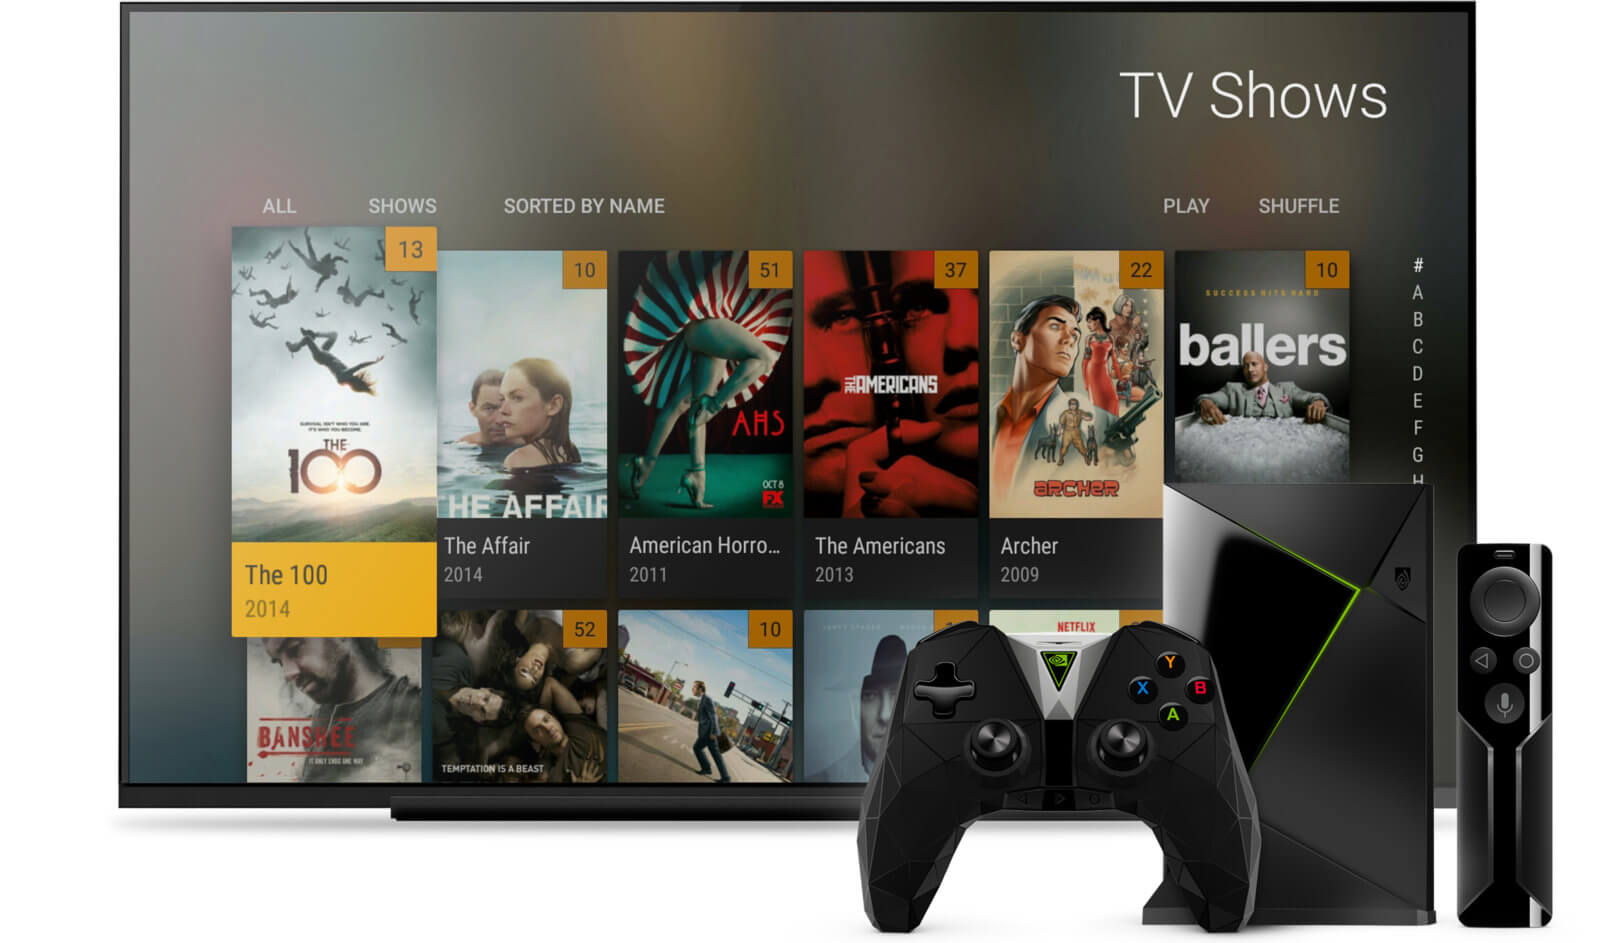 How to setup Plex on NVIDIA SHIELD